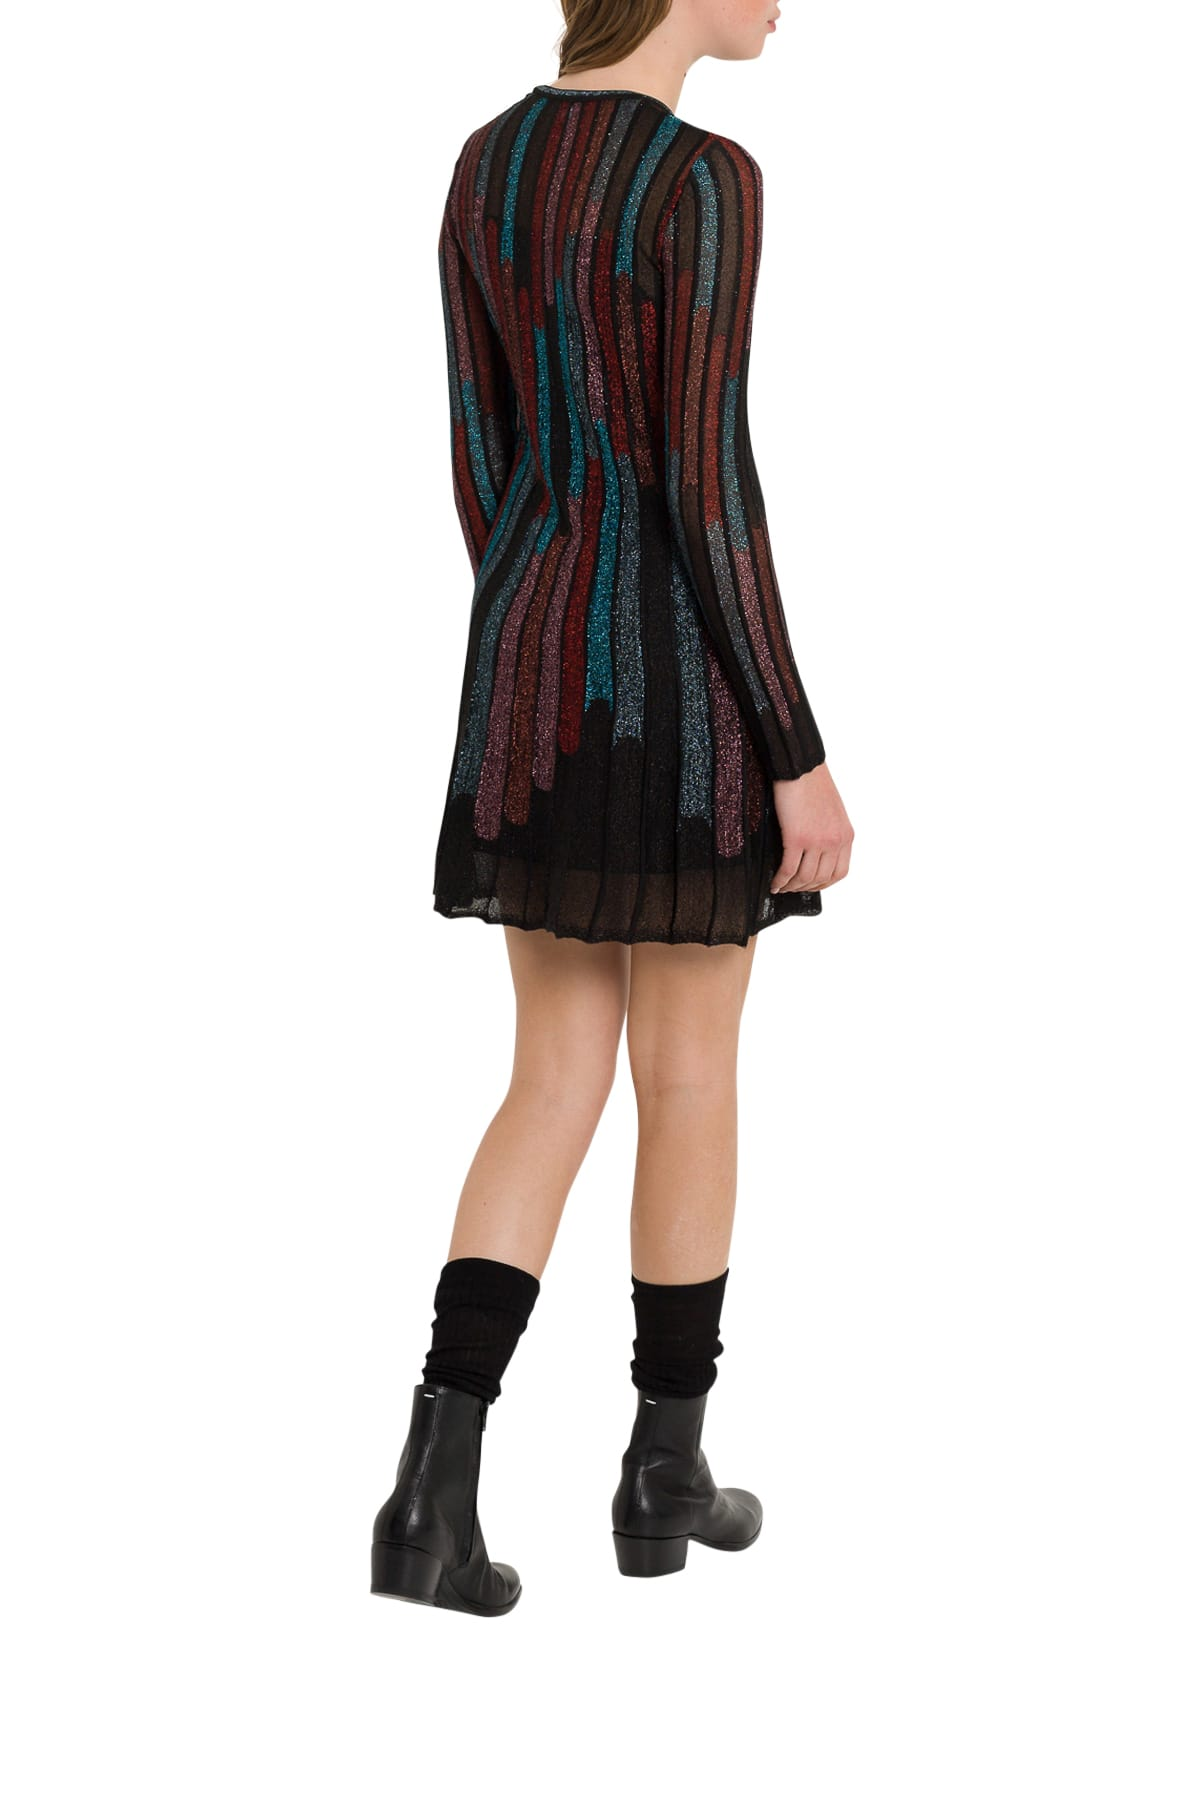 M Missoni Striped Multicolour Midi Dress In Lurex Knit